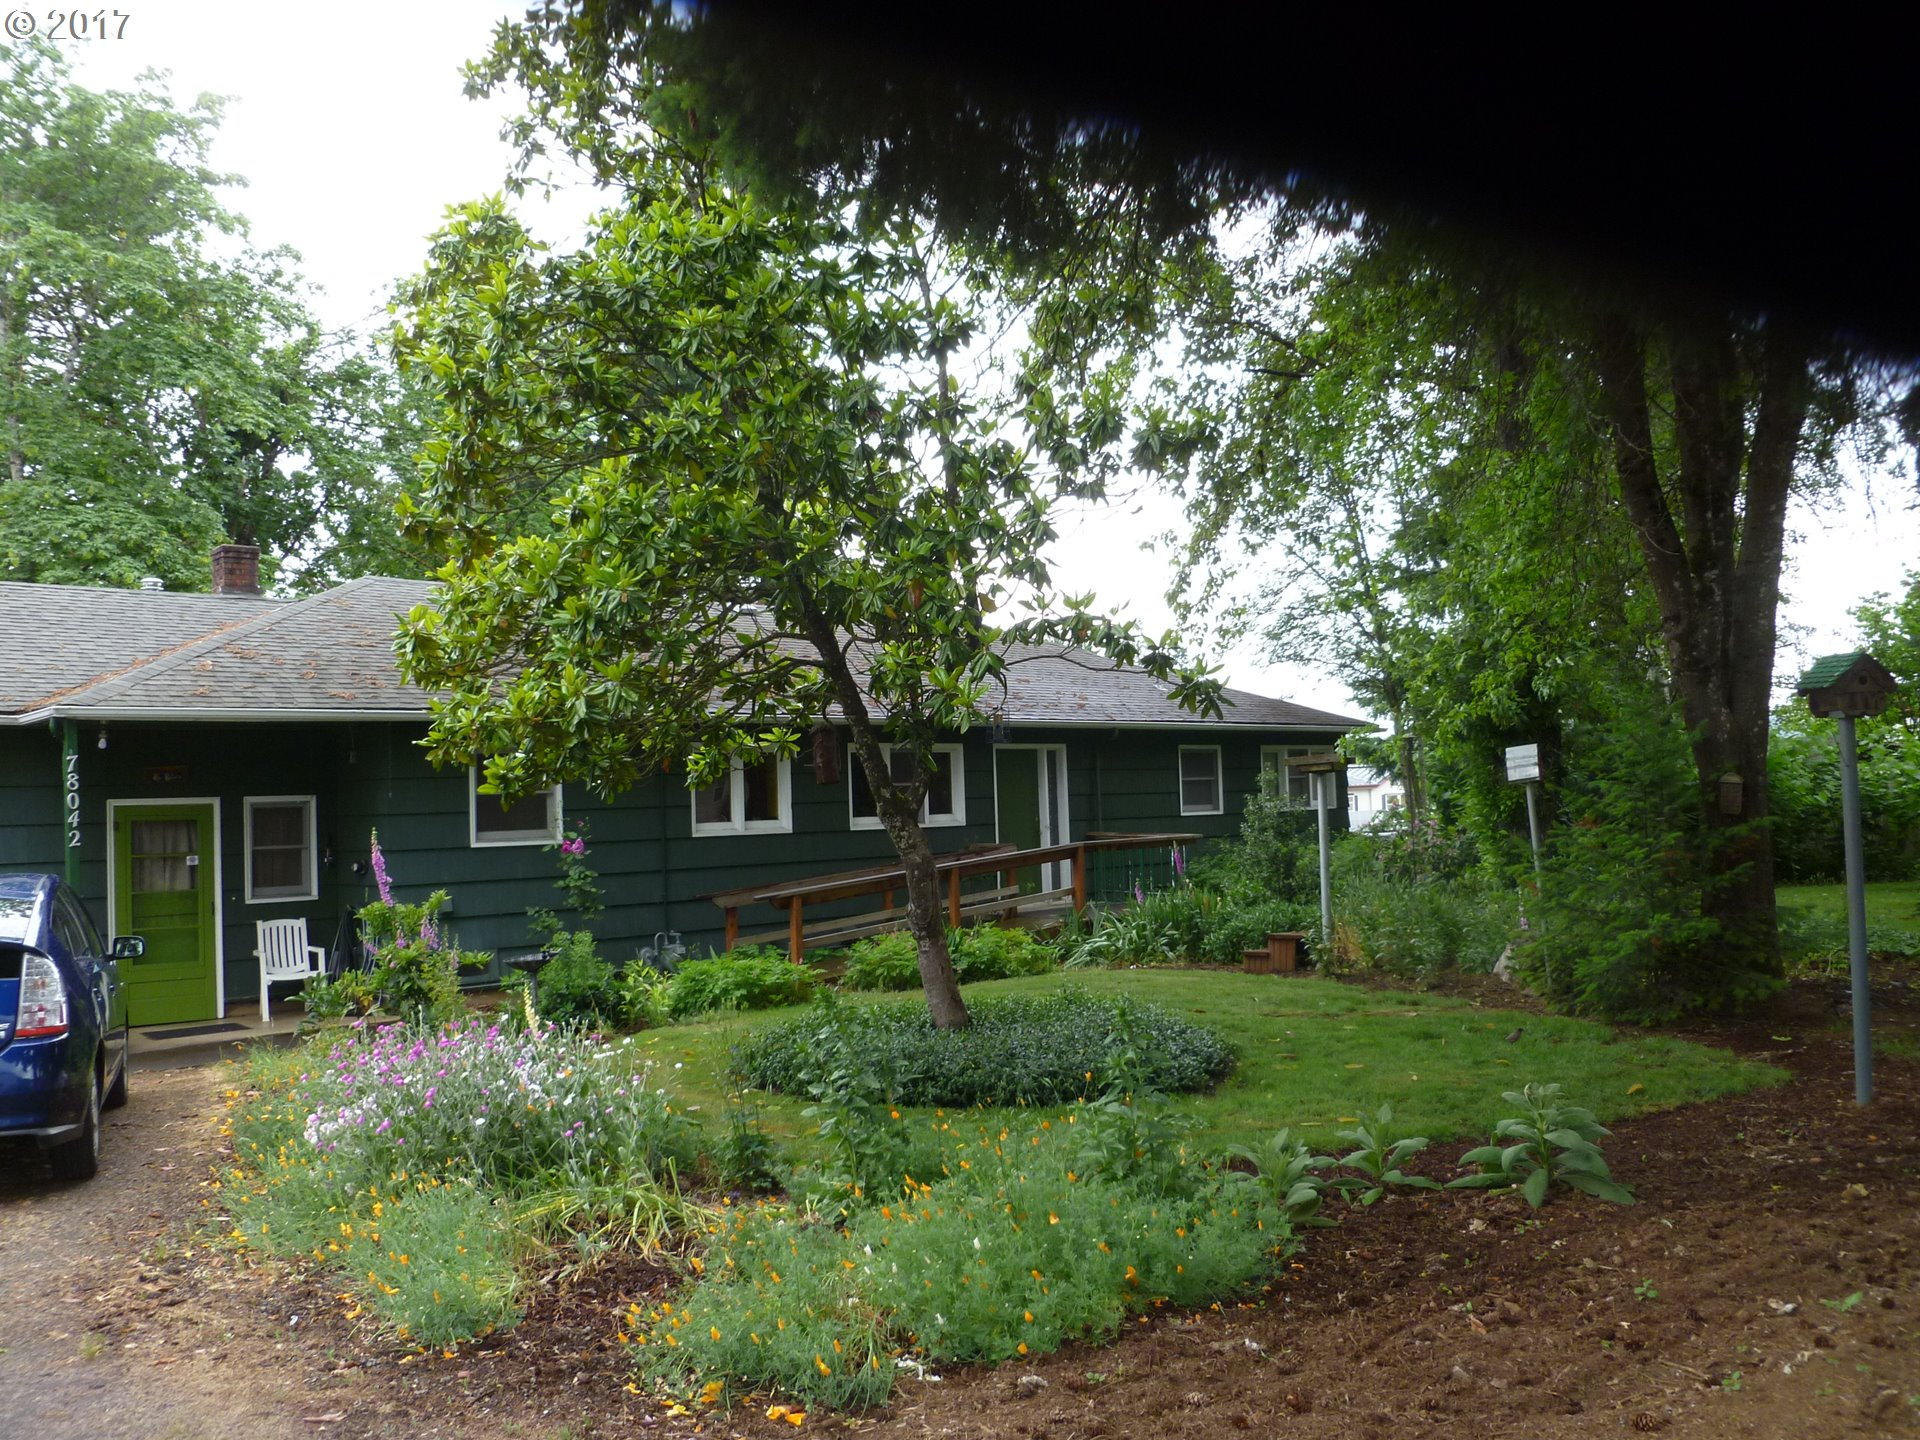 78042 S 6TH ST, Cottage Grove, OR 97424